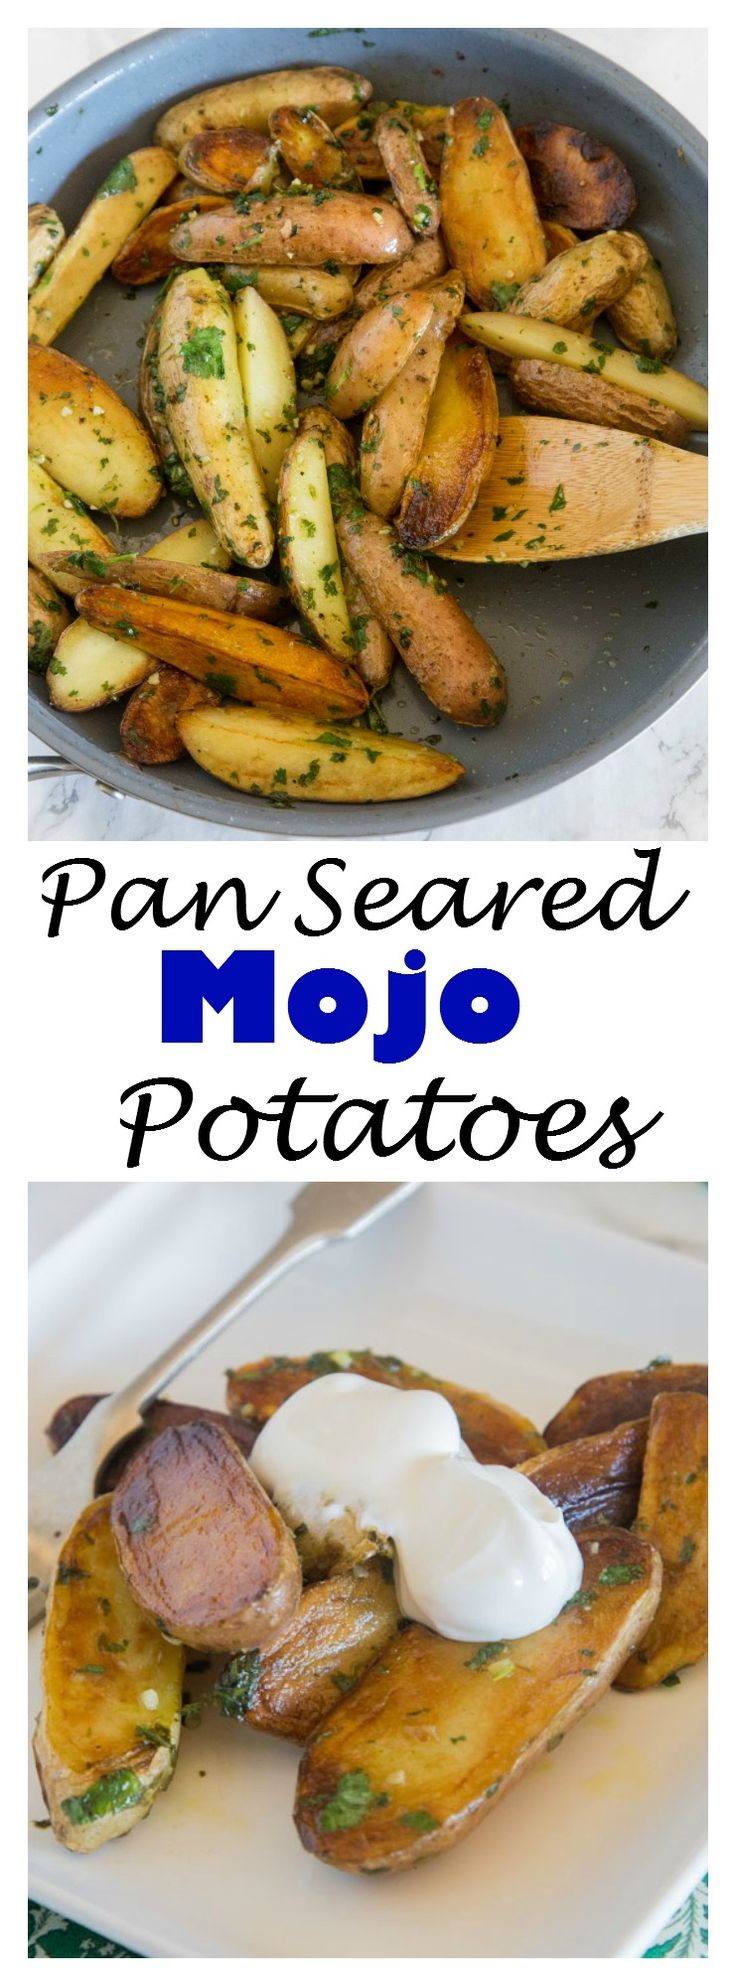 Pan Seared Mojo Potatoes – fingerling potatoes are seared and cooked to perfection in just minutes. Then mixed with a cilantro and herb mixture for a delicious side dish.